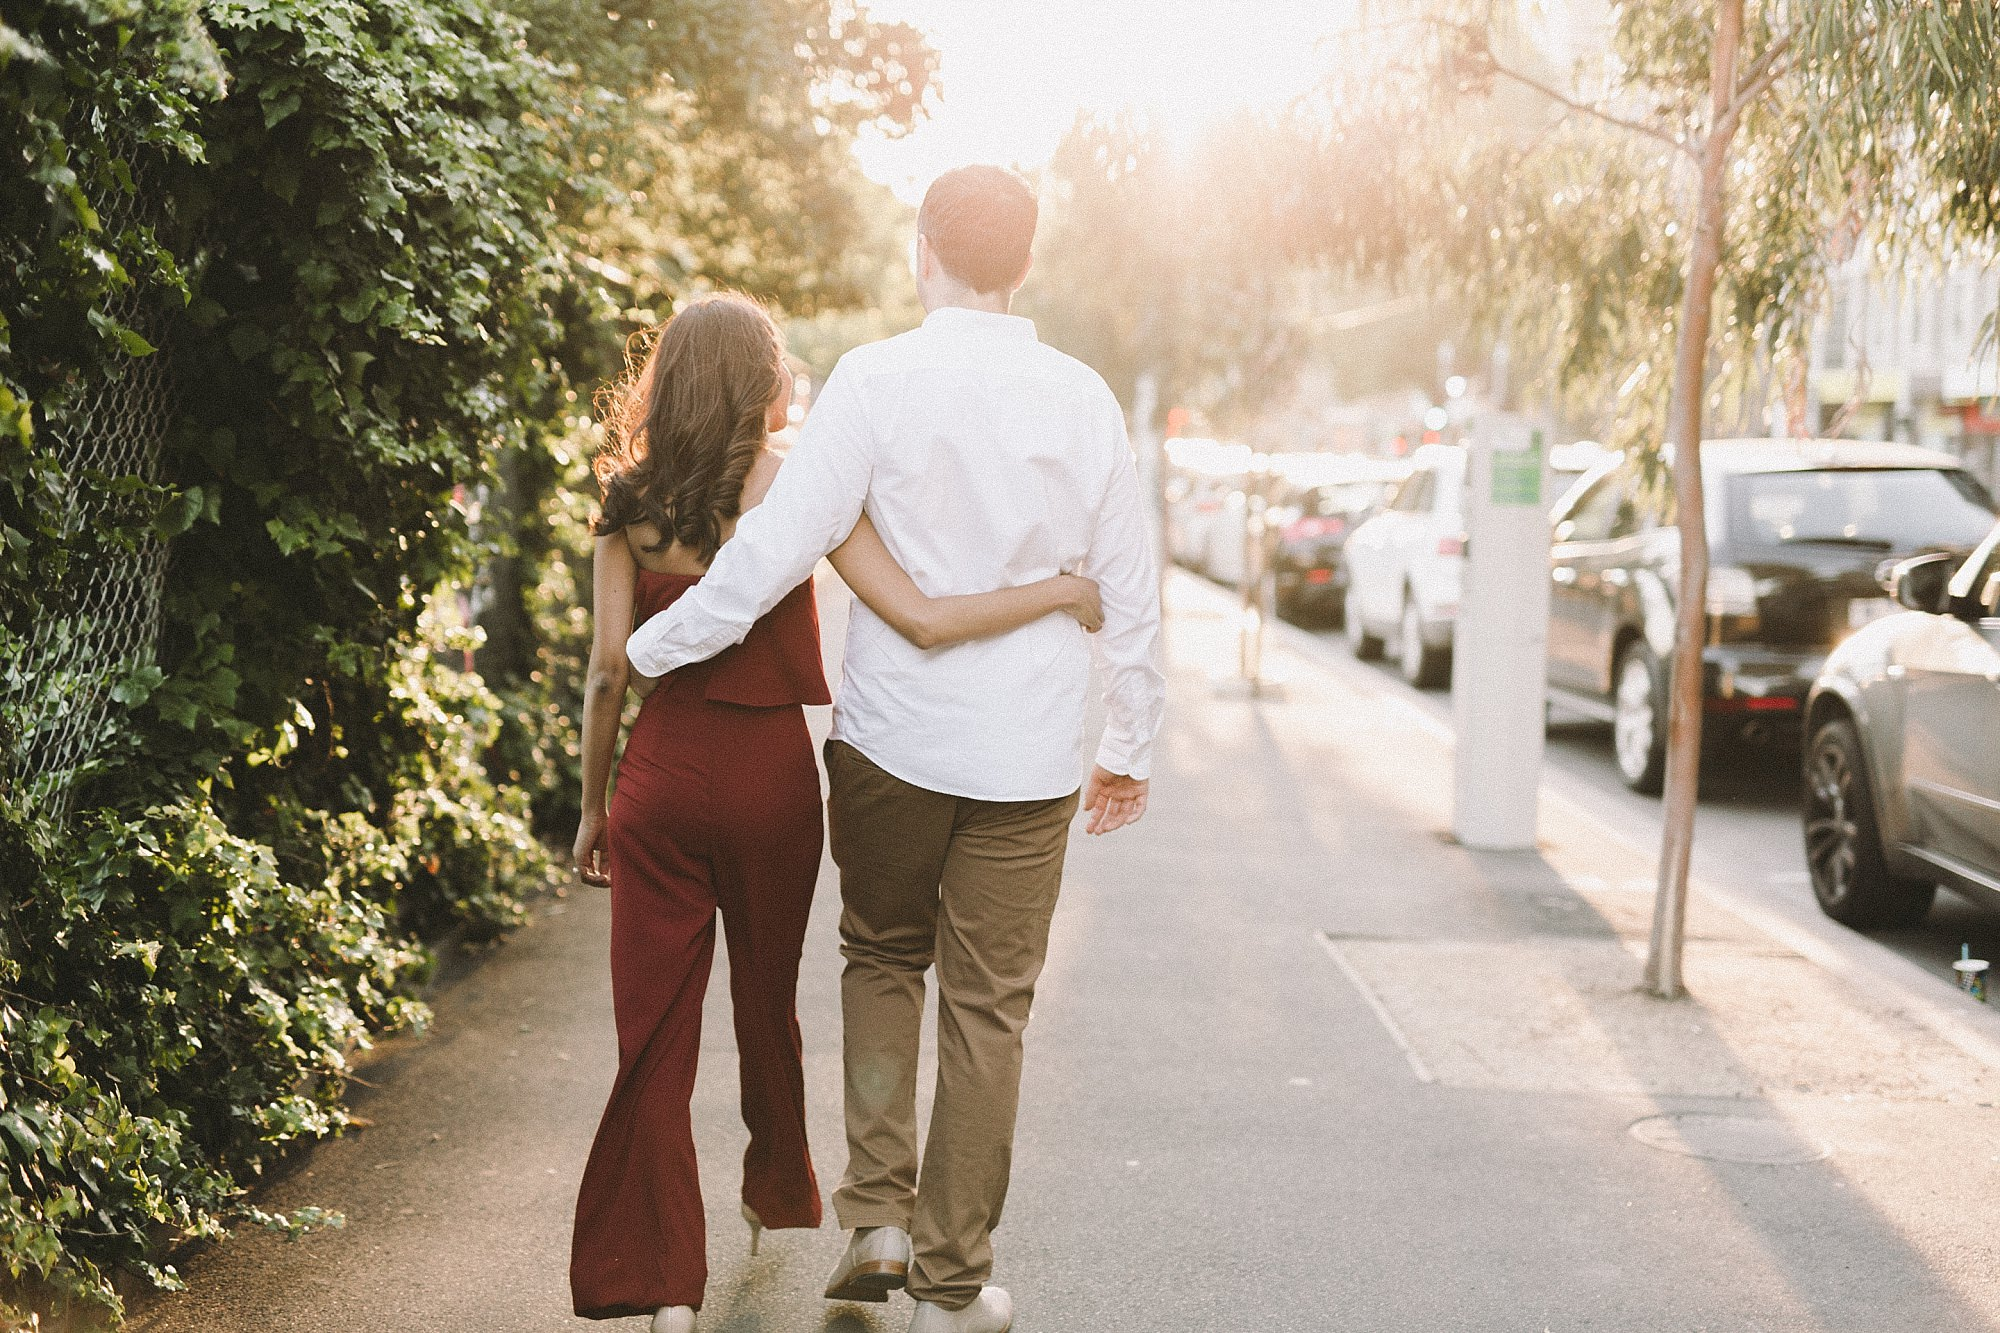 Melbourne Natural and Fun Engagement Wedding Photographer 190.JPG